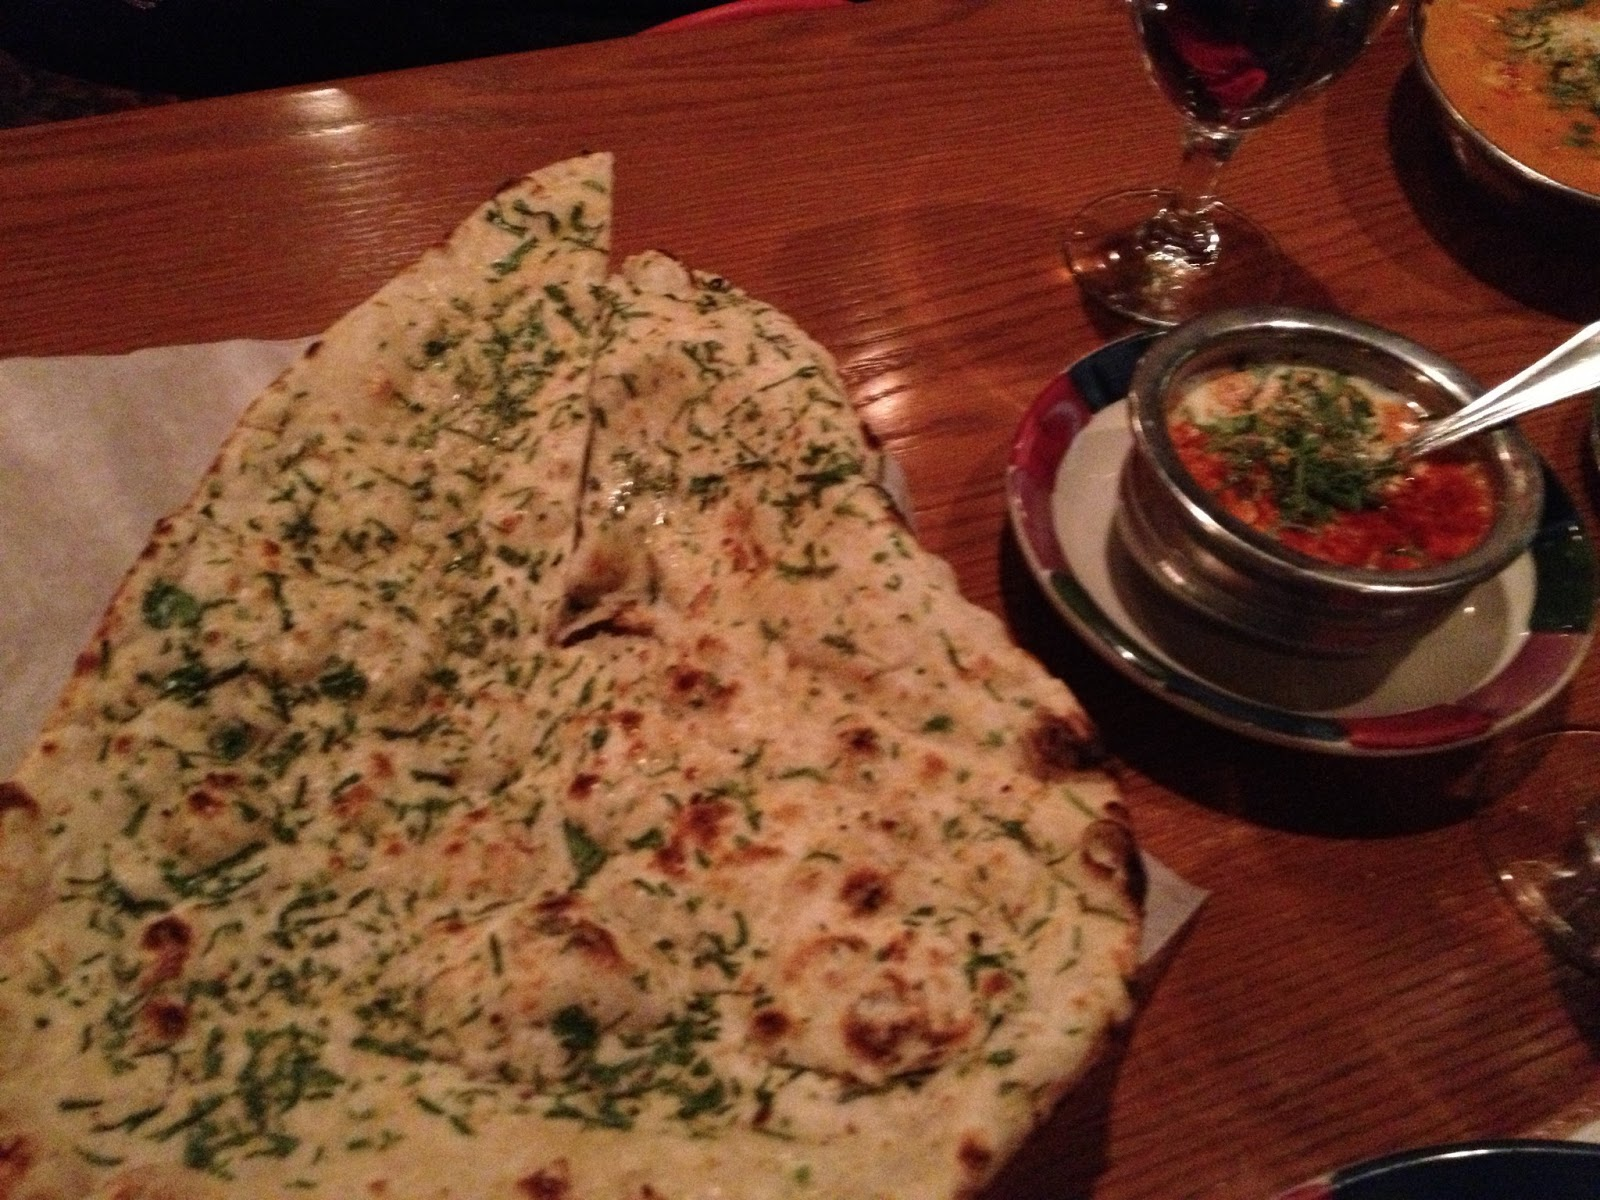 food blog, food blogger, food reviews, utah food review, utah food blogger, garlic naan, naan, indian food, bombay house